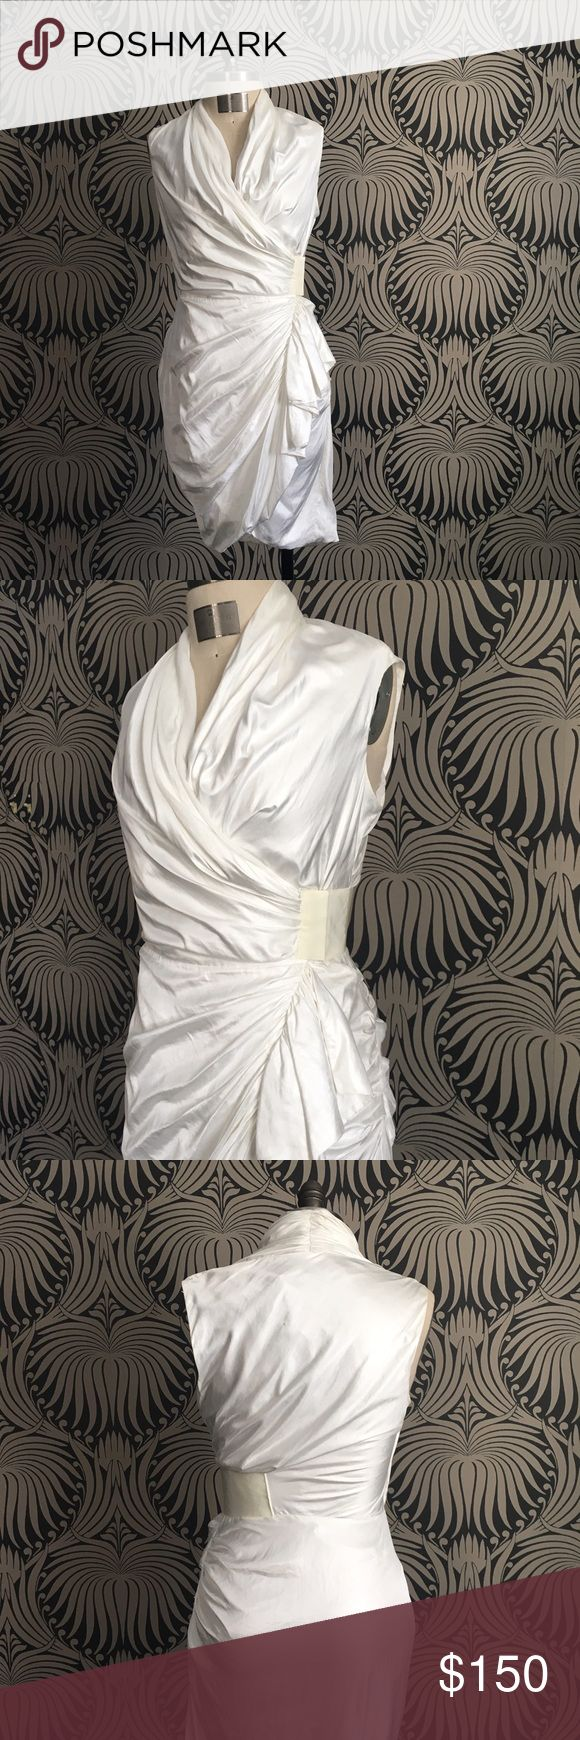 Allsaints White Wrap Draped Dress Silky white fabric drapes beautifully around the body in this sexy wrap dress by Allsaints. US size 6. Dress is new with tags attached, never worn and in near perfect condition- There is one tiny mark on the upper back (not very noticeable) and transfer from the ink on the tag on the inside lining. This is not at all visible when you are wearing the dress. Please see photos. Gorgeous dress! All Saints Dresses Asymmetrical